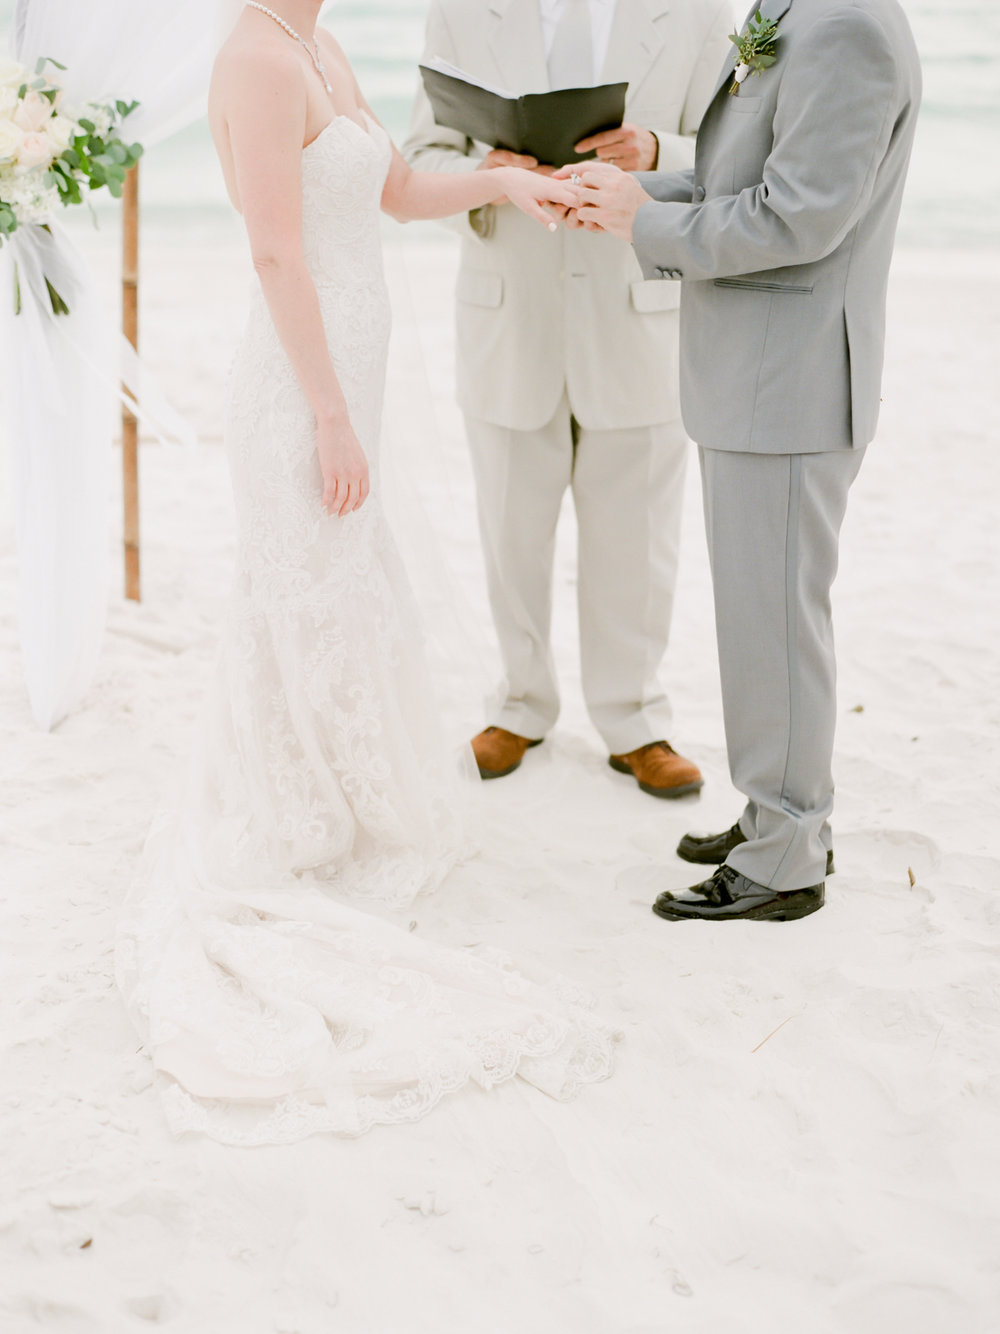 alysbeach-wedding-kayliebpoplinphotography